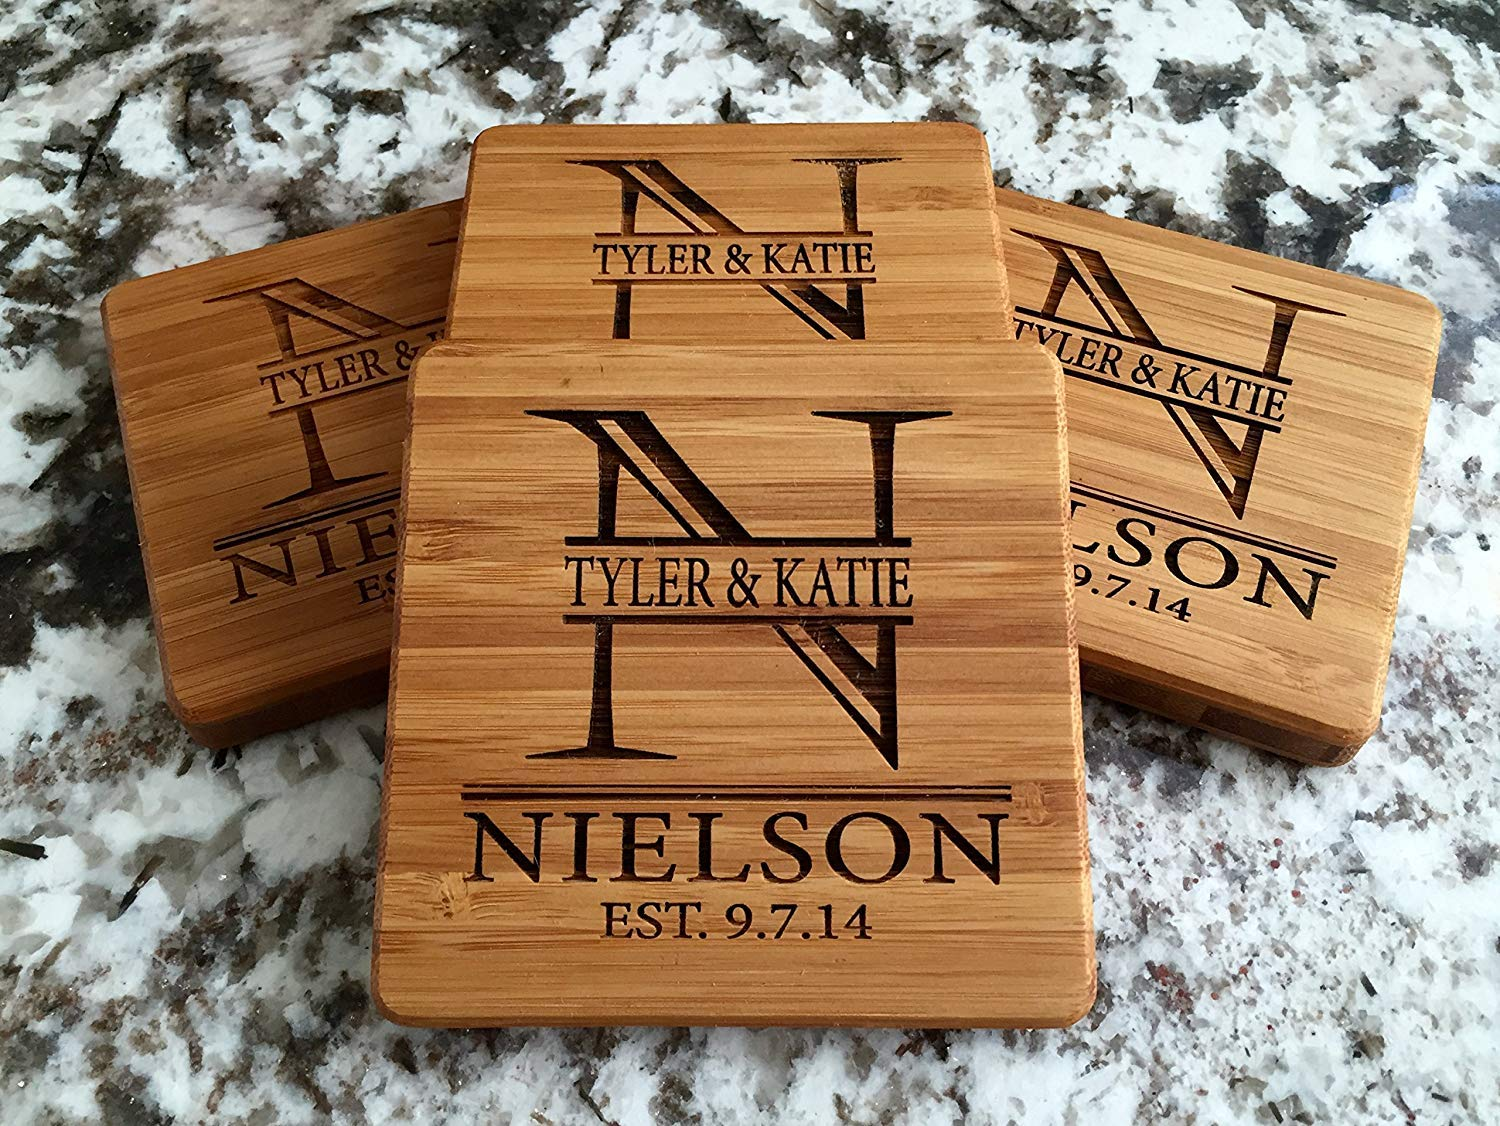 Personalized Wedding Gifts and Bridal Shower Gifts - Monogram Wood Coasters for Drinks (Set of 4, Nielson Design)